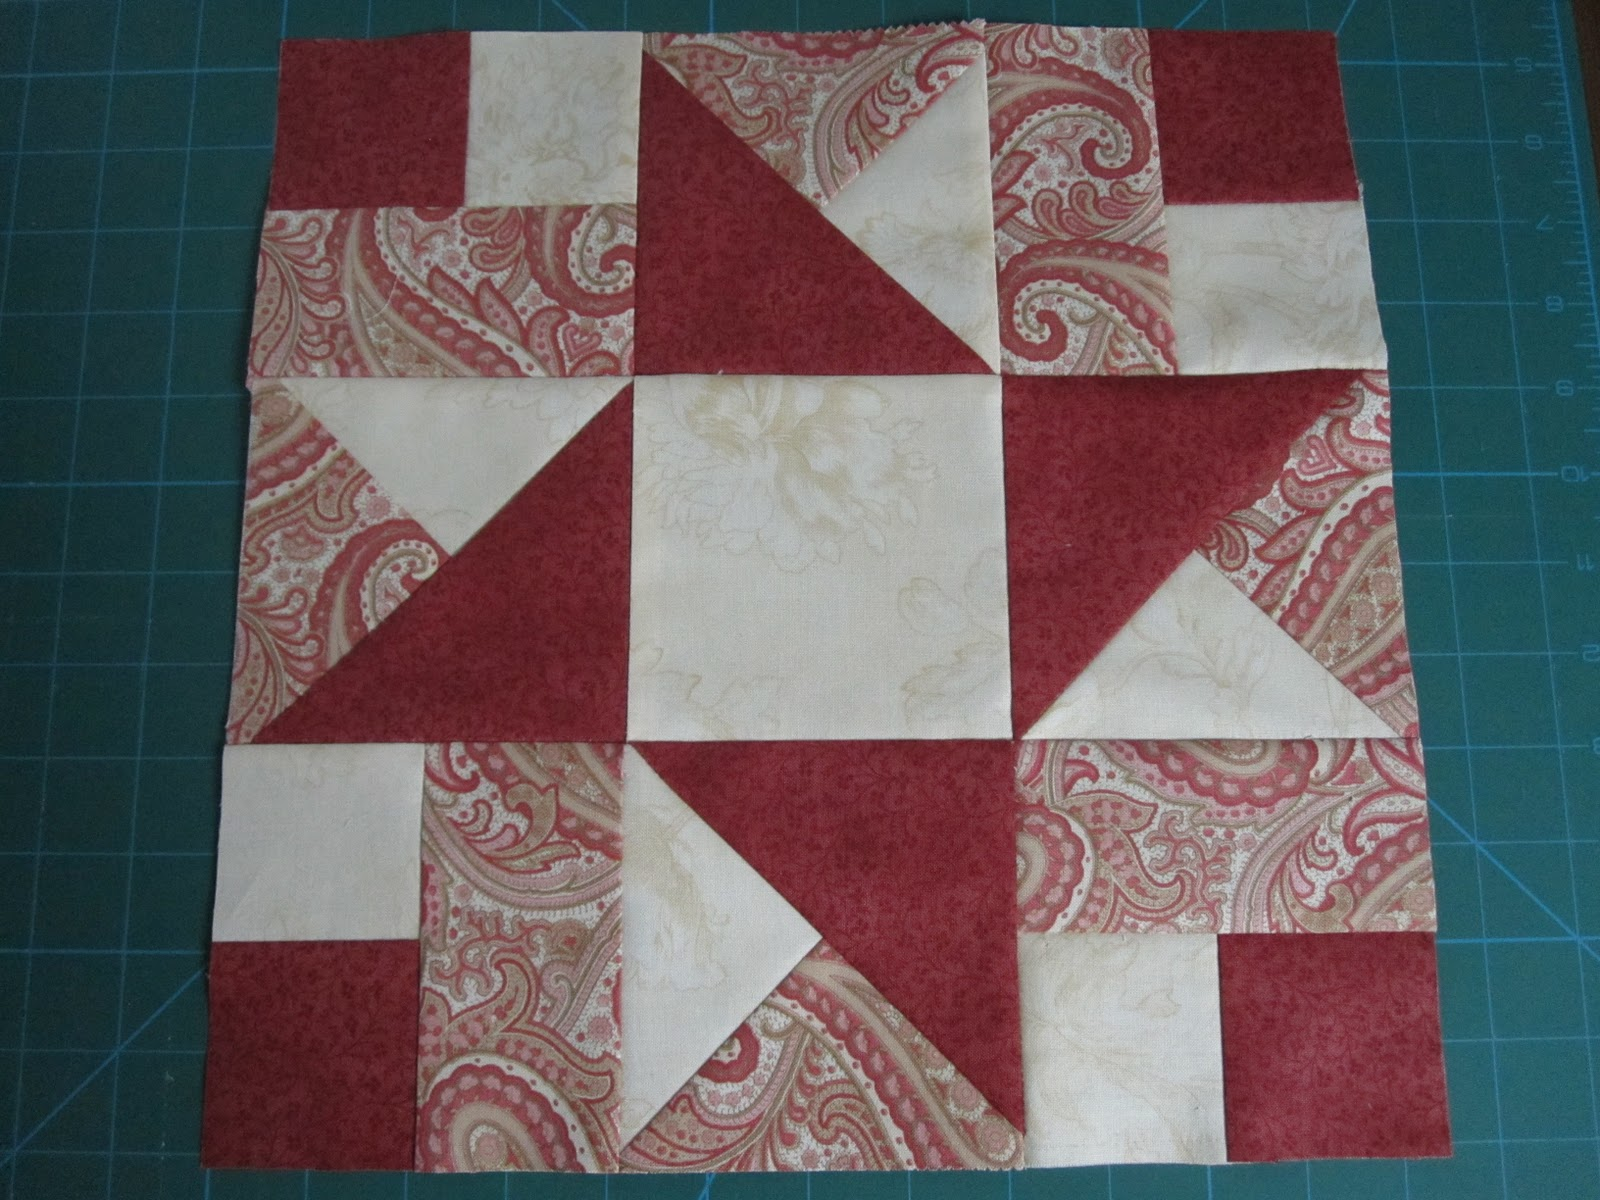 Layer Cake Quilt Definition : EL PETIT TALLER: Layer Cake Quilt Along - Block 1